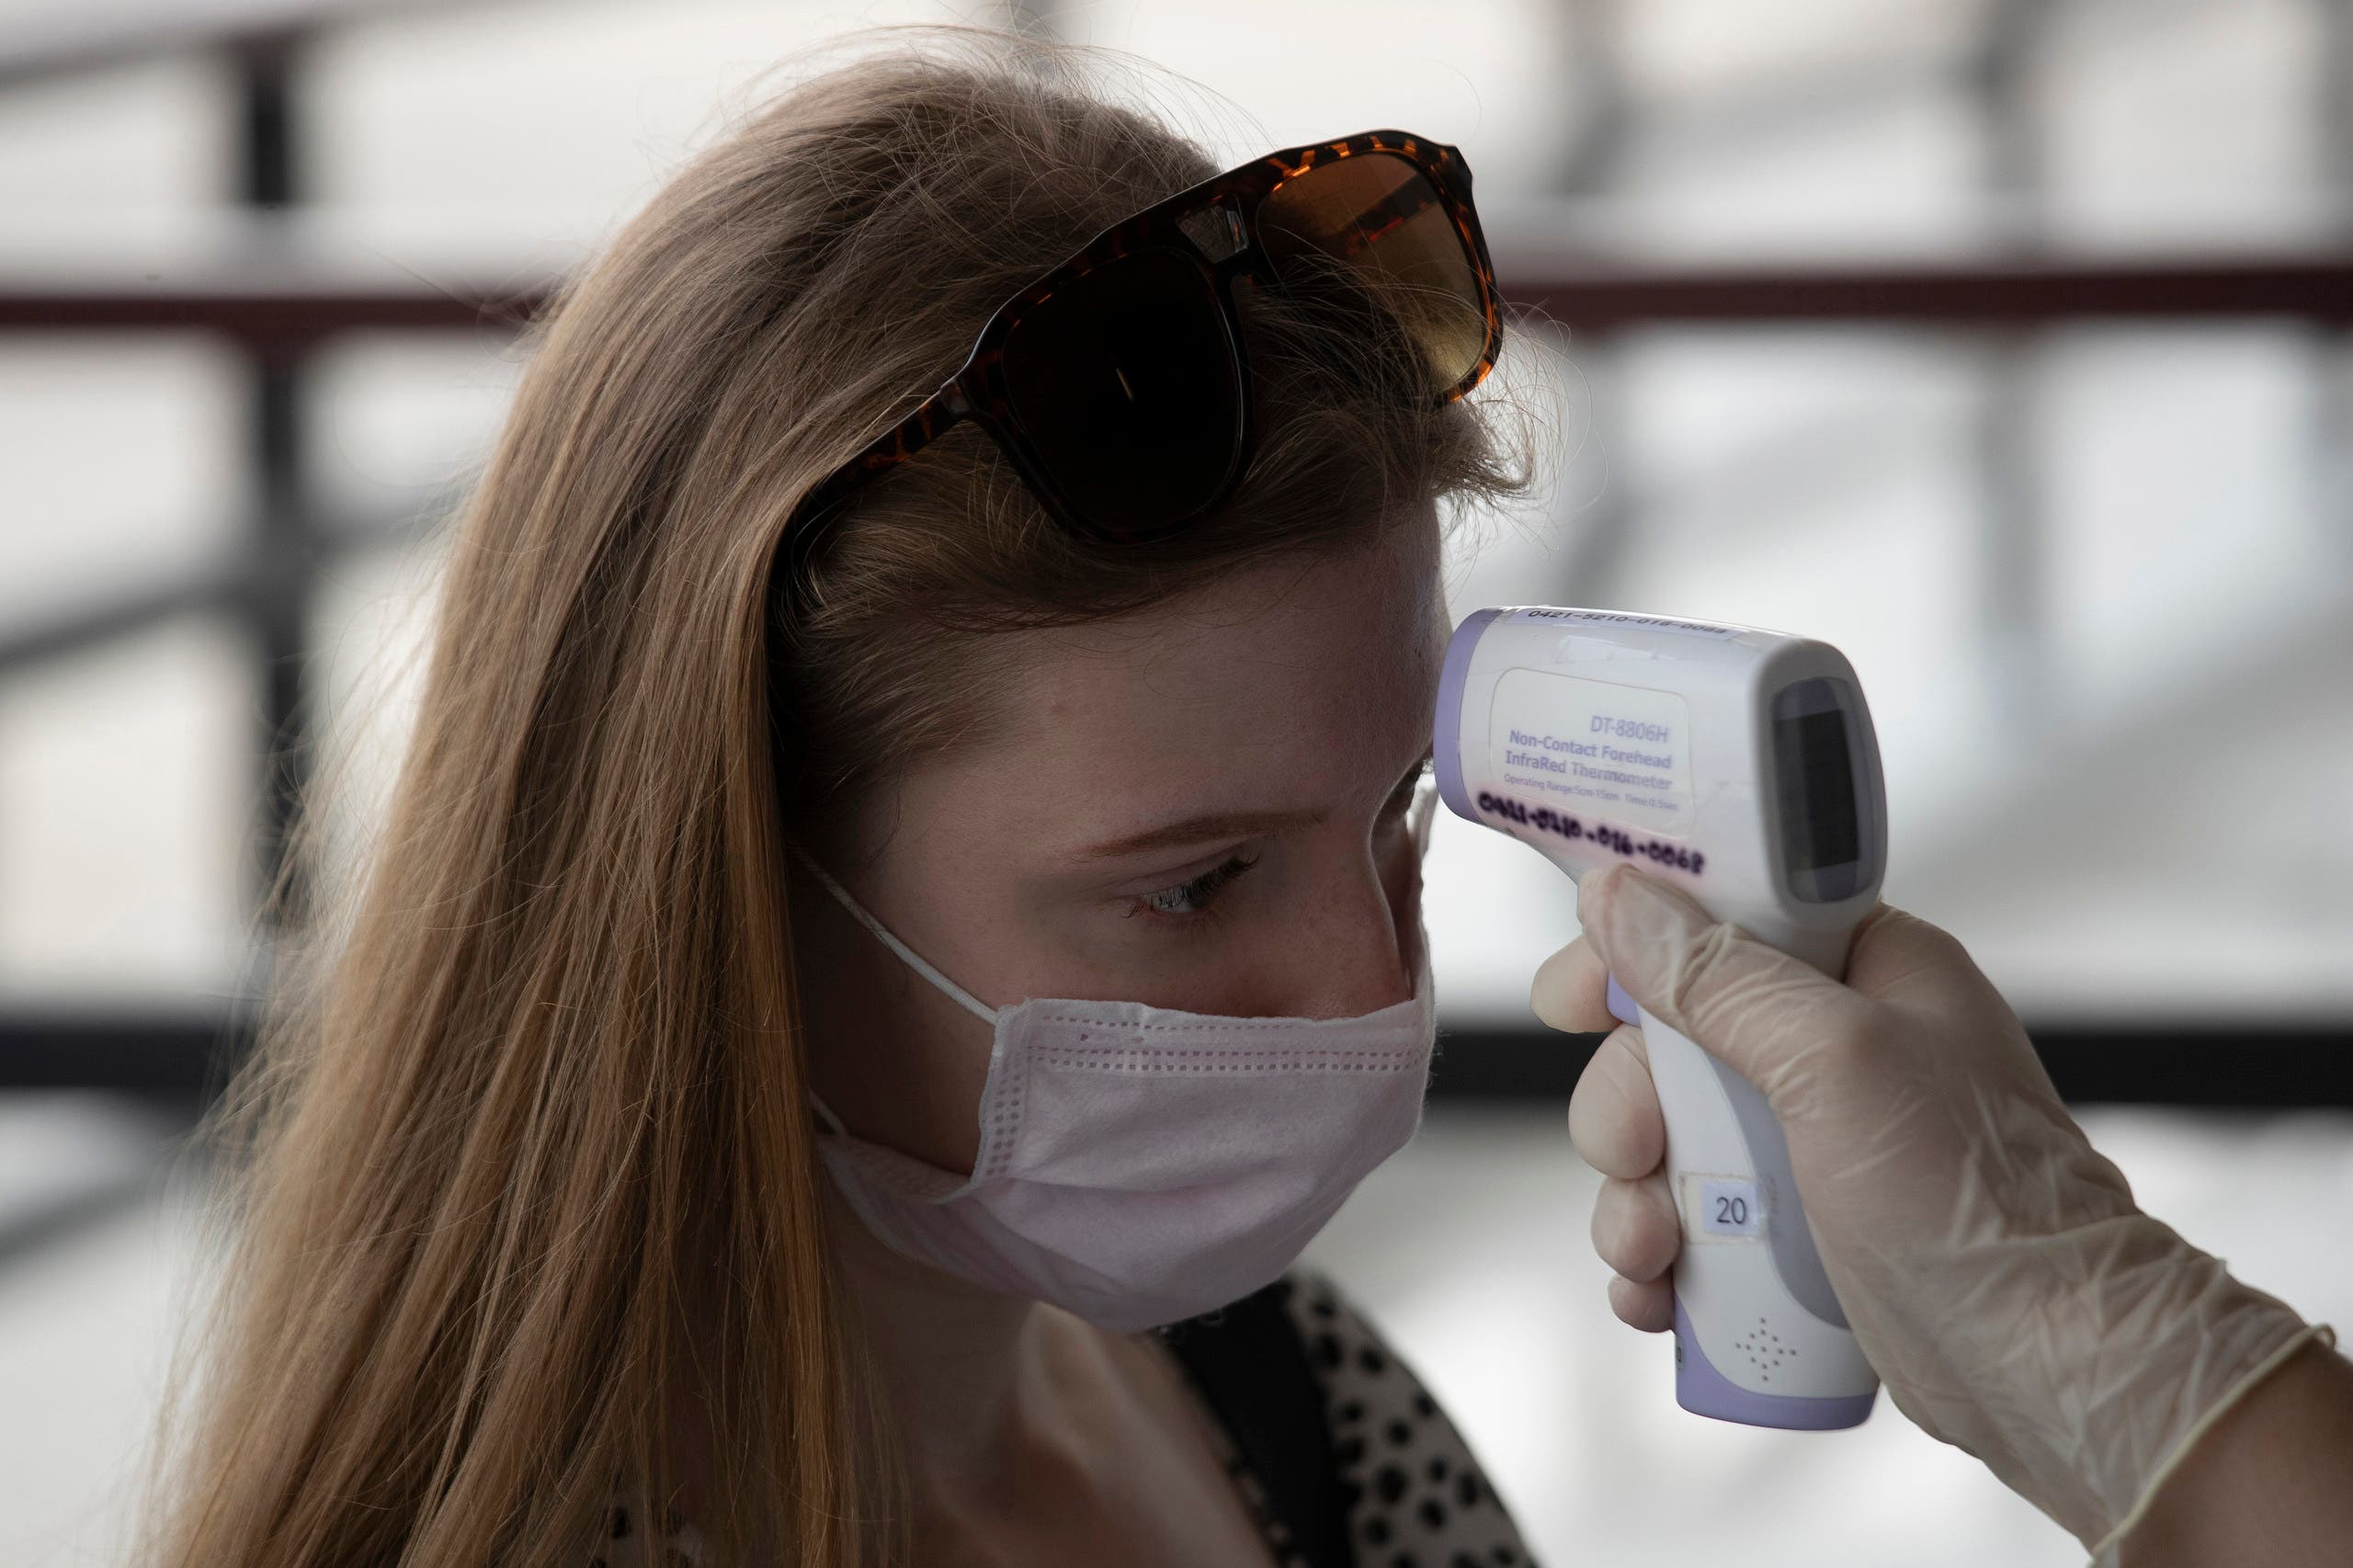 A health officer checks the temperature of a tourist who wants to extend visa at Immigration Bureau in Bangkok on March 27, 2020. (AP)